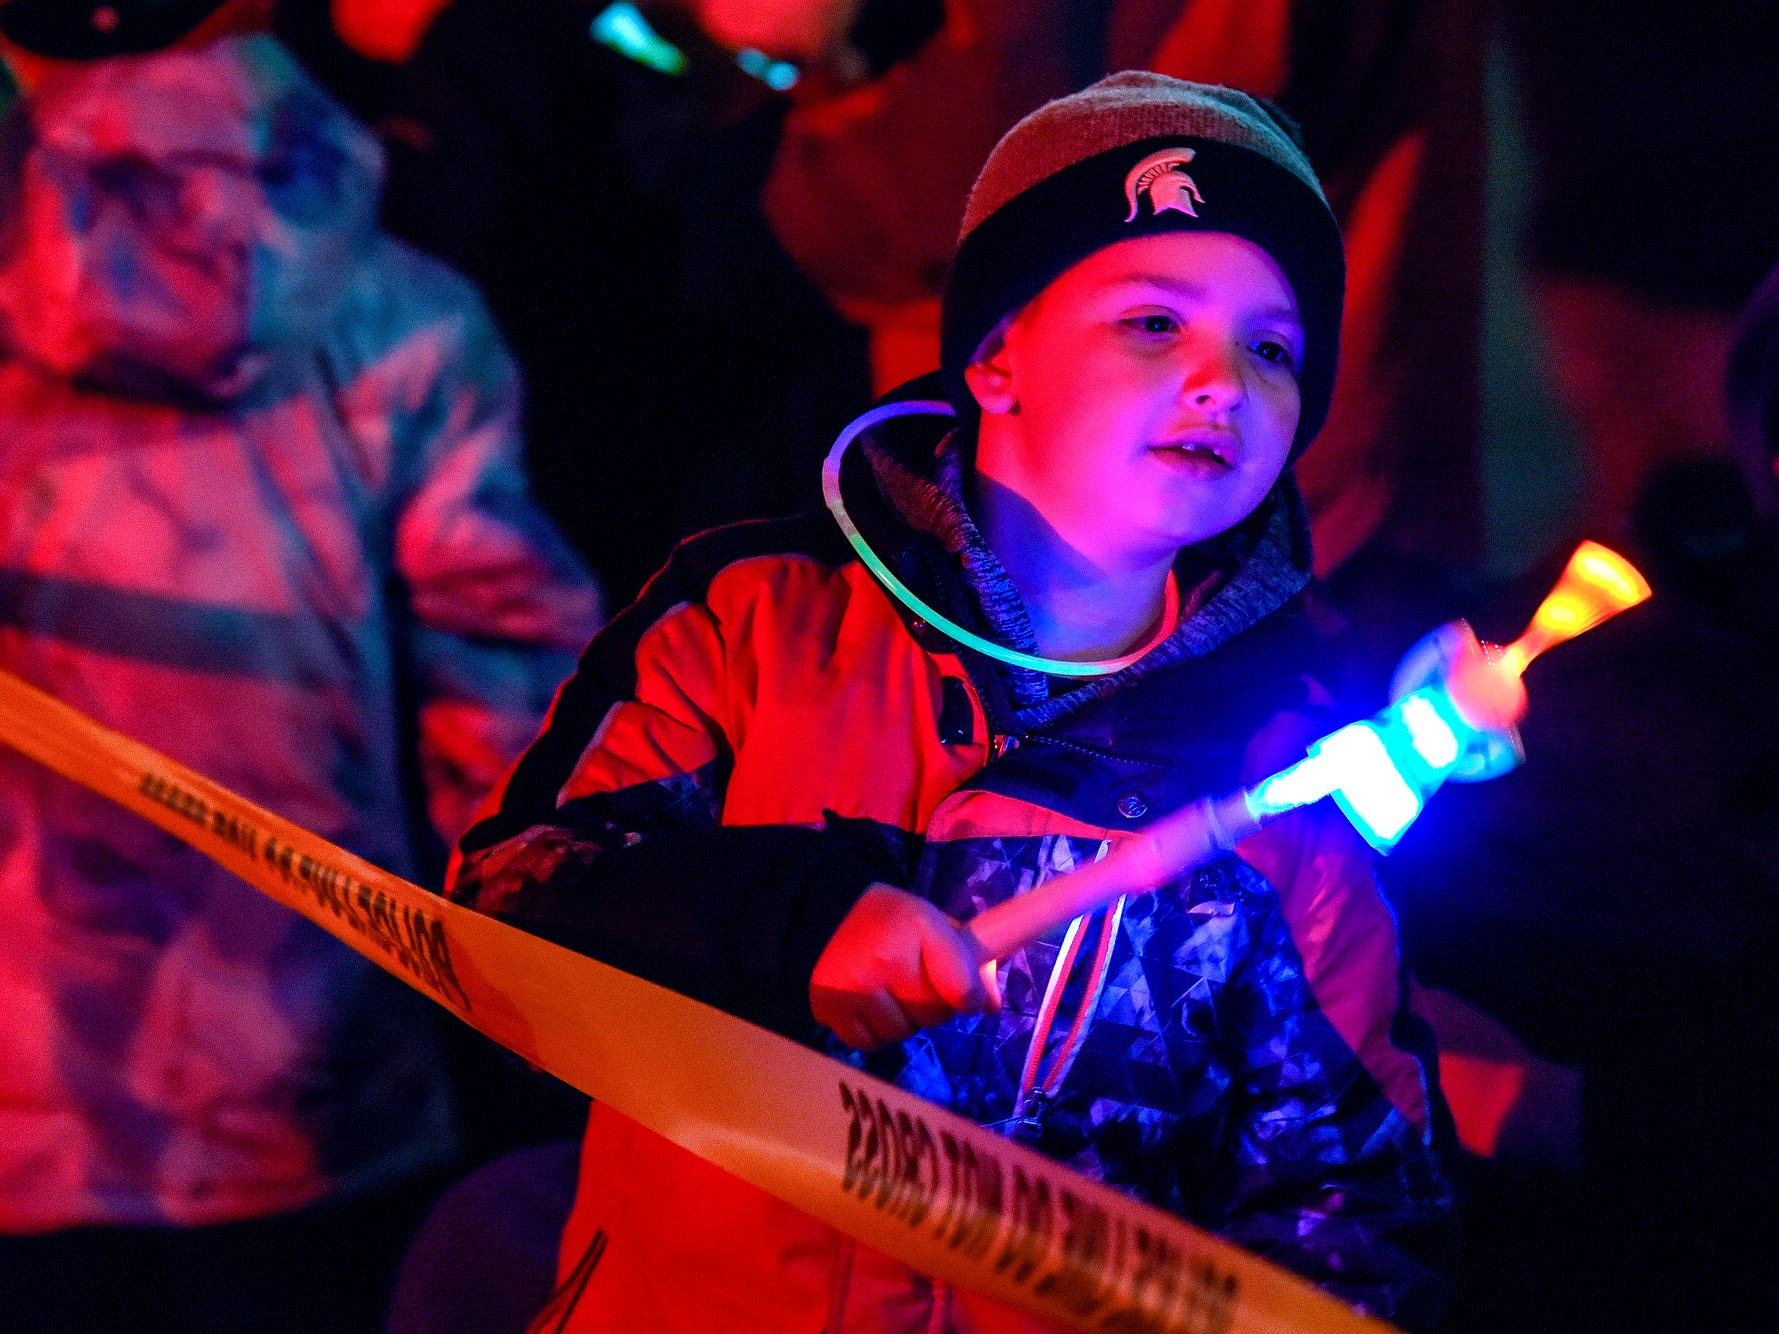 DeWitt resident Gavin Wethy, 5, plays with a light stick while waiting for the Electric Light Parade to start during Silver Bells in the City on Friday, Nov. 16, 2018, in downtown Lansing.